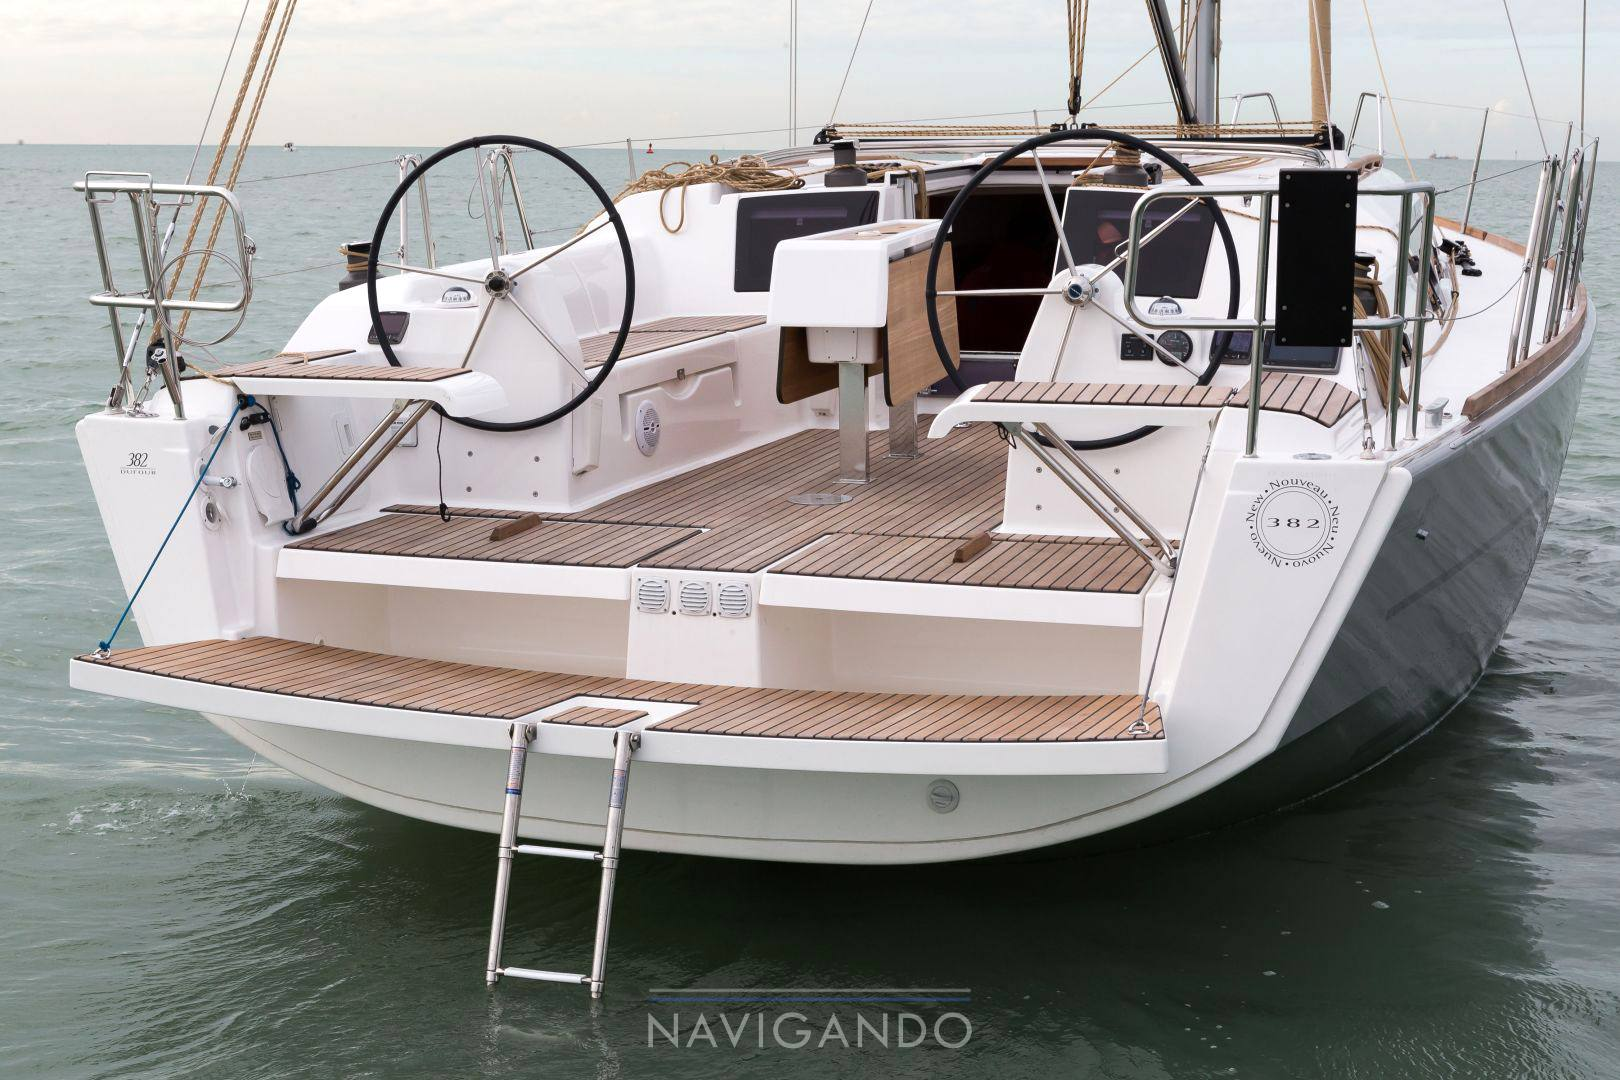 Dufour 382 grand large Sailing boat used for sale